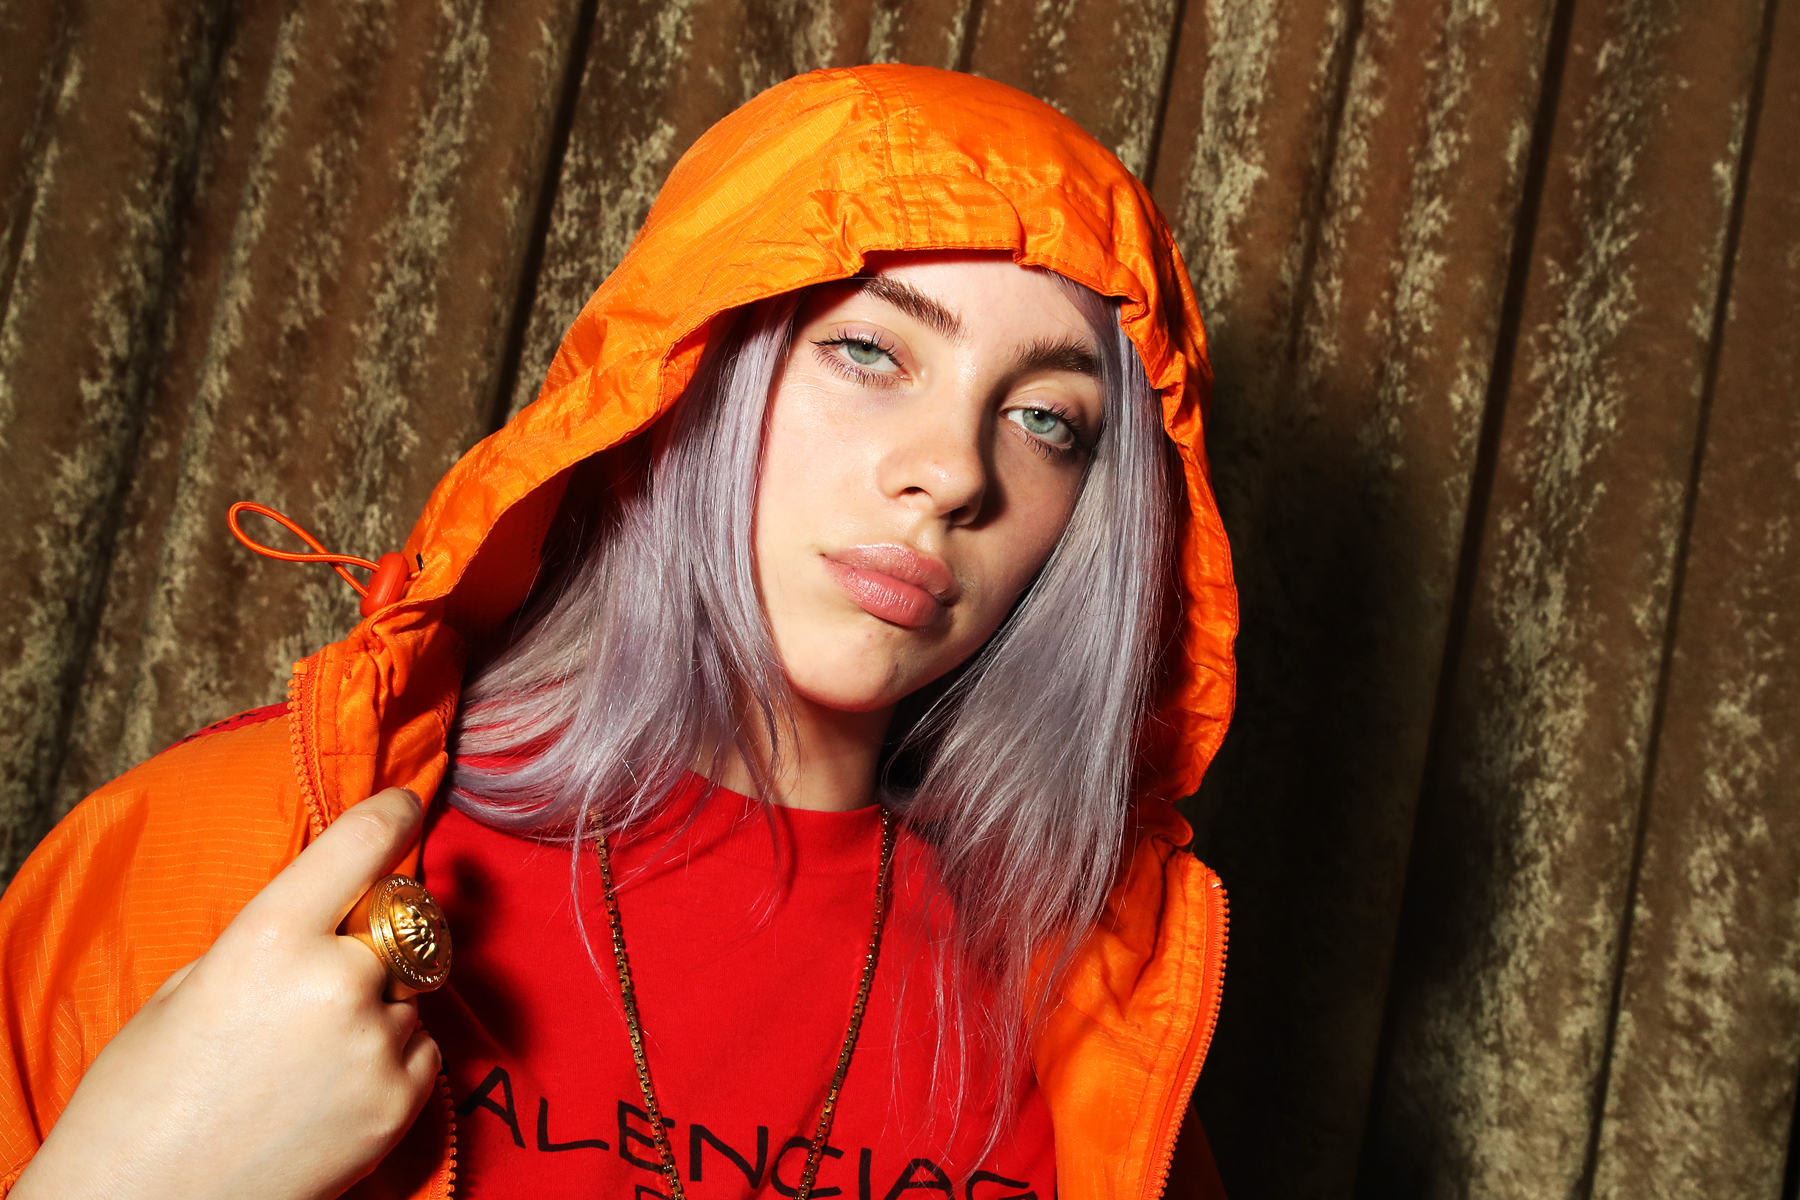 Hear Billie Eilish S Sprawling Holiday Ballad Come Out And Play Rolling Stone